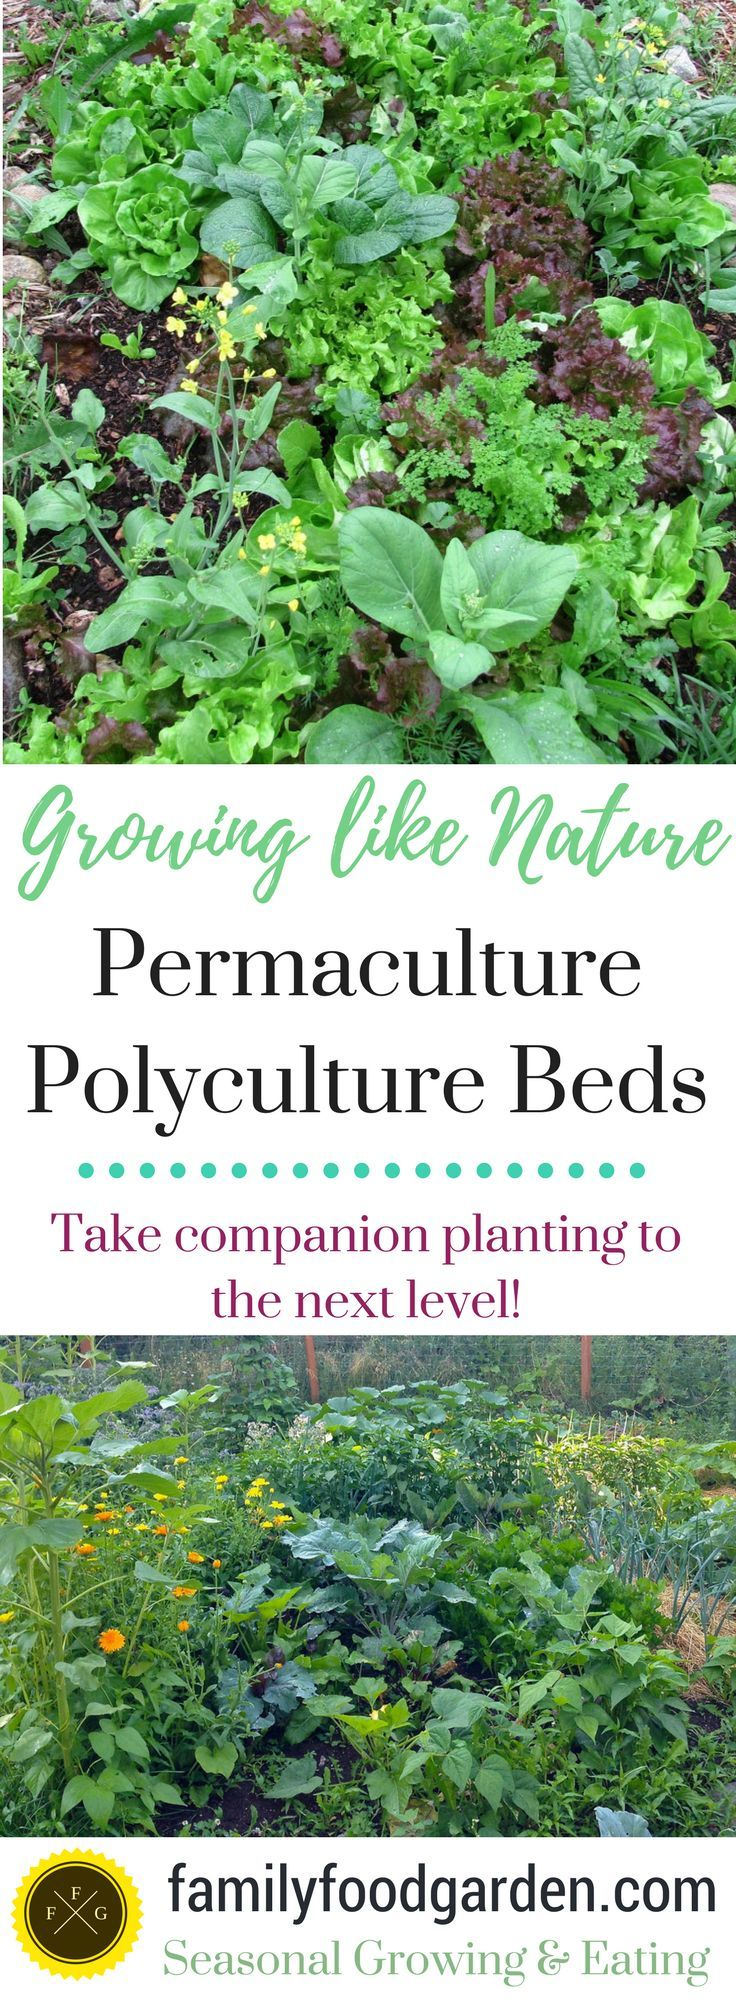 Permaculture Design Examples Google Search: Best 25+ Permaculture Garden Ideas On Pinterest